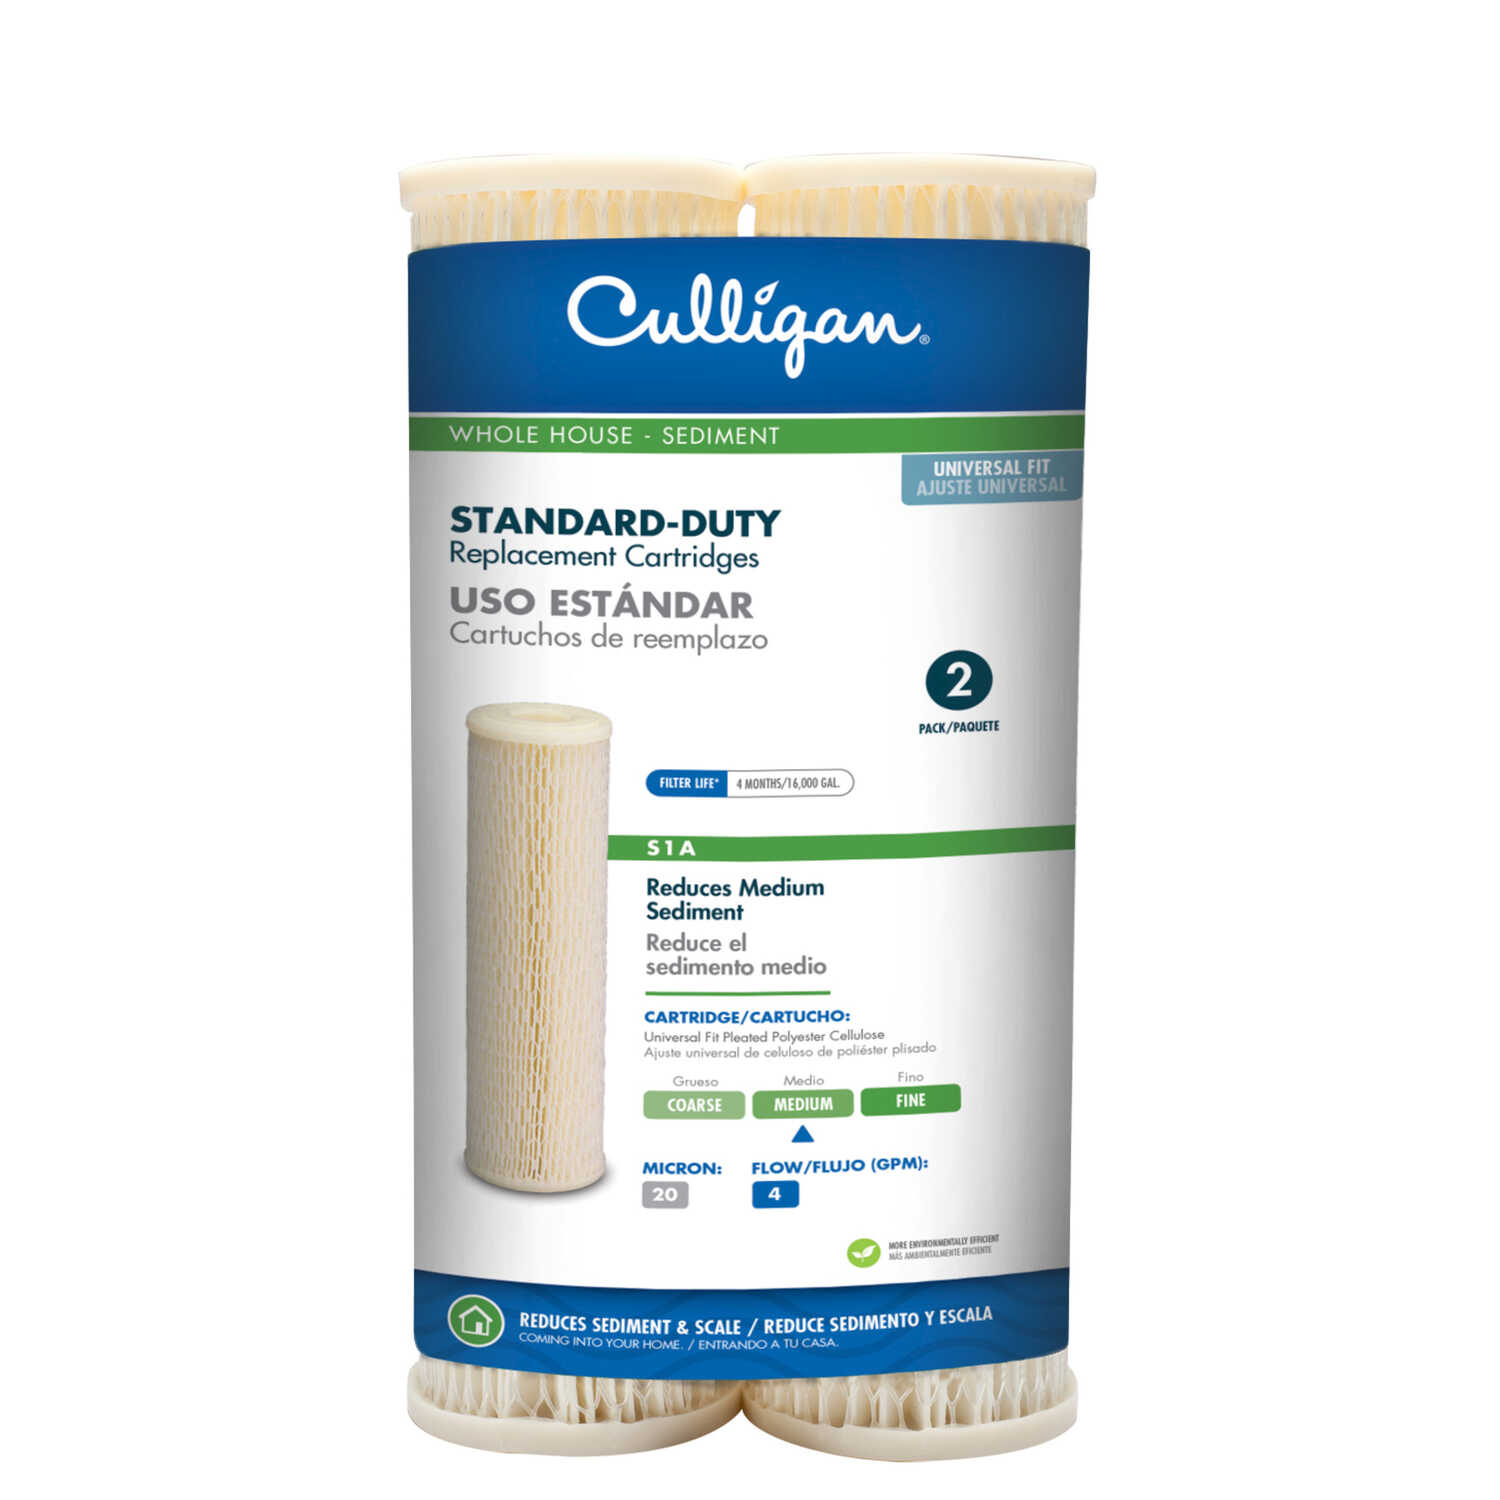 Culligan  Level 1 Sediment  Replacement Filter Cartridge  For Whole House 16000 gal.